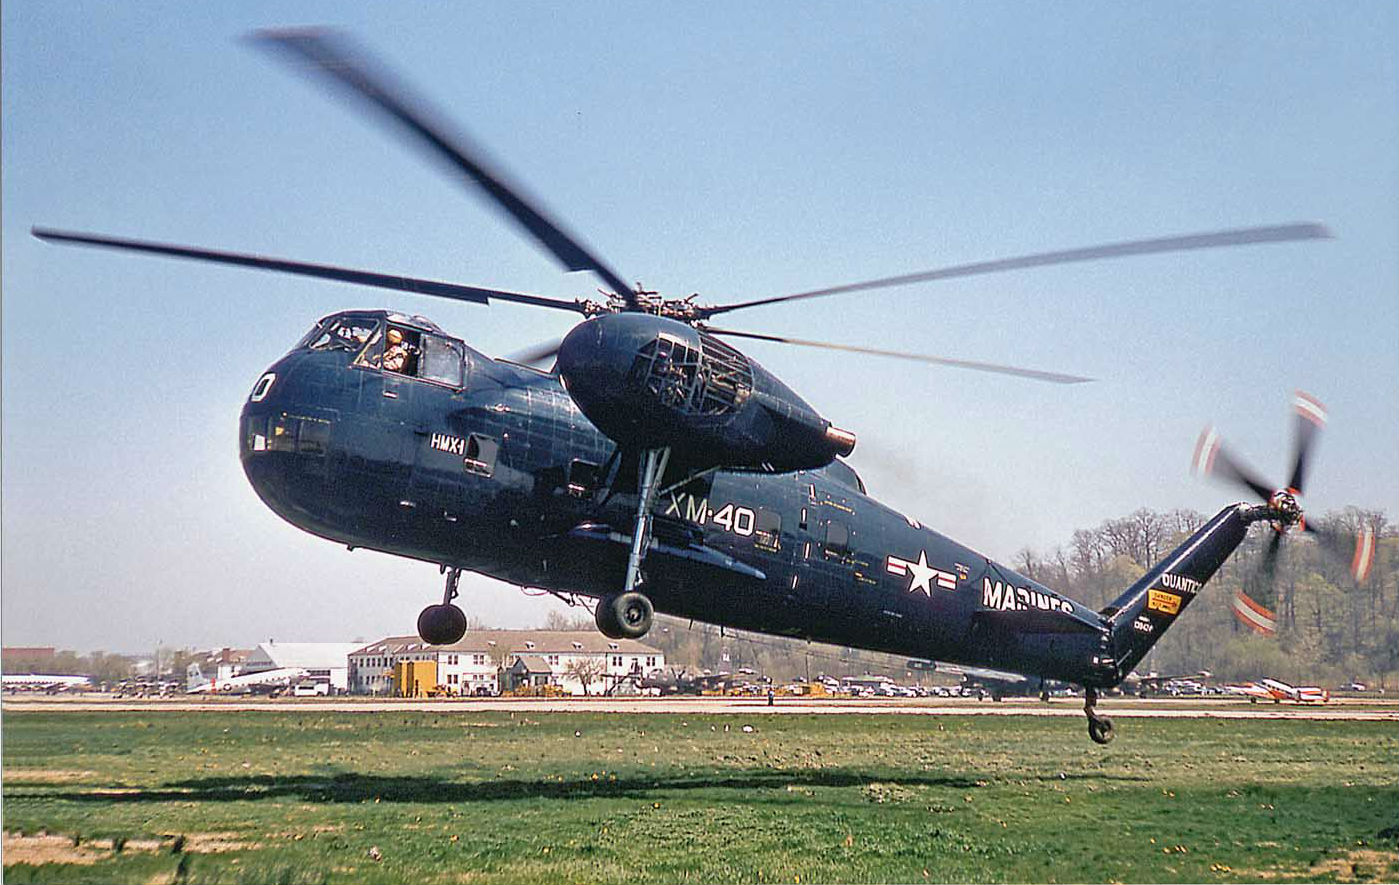 A U.S. Marine Corps HR2S-1 at the Marine Helicopter Squadron One HMX-1 in Quantico, Virginia, where it was first evaluated and tested by Marine pilots.